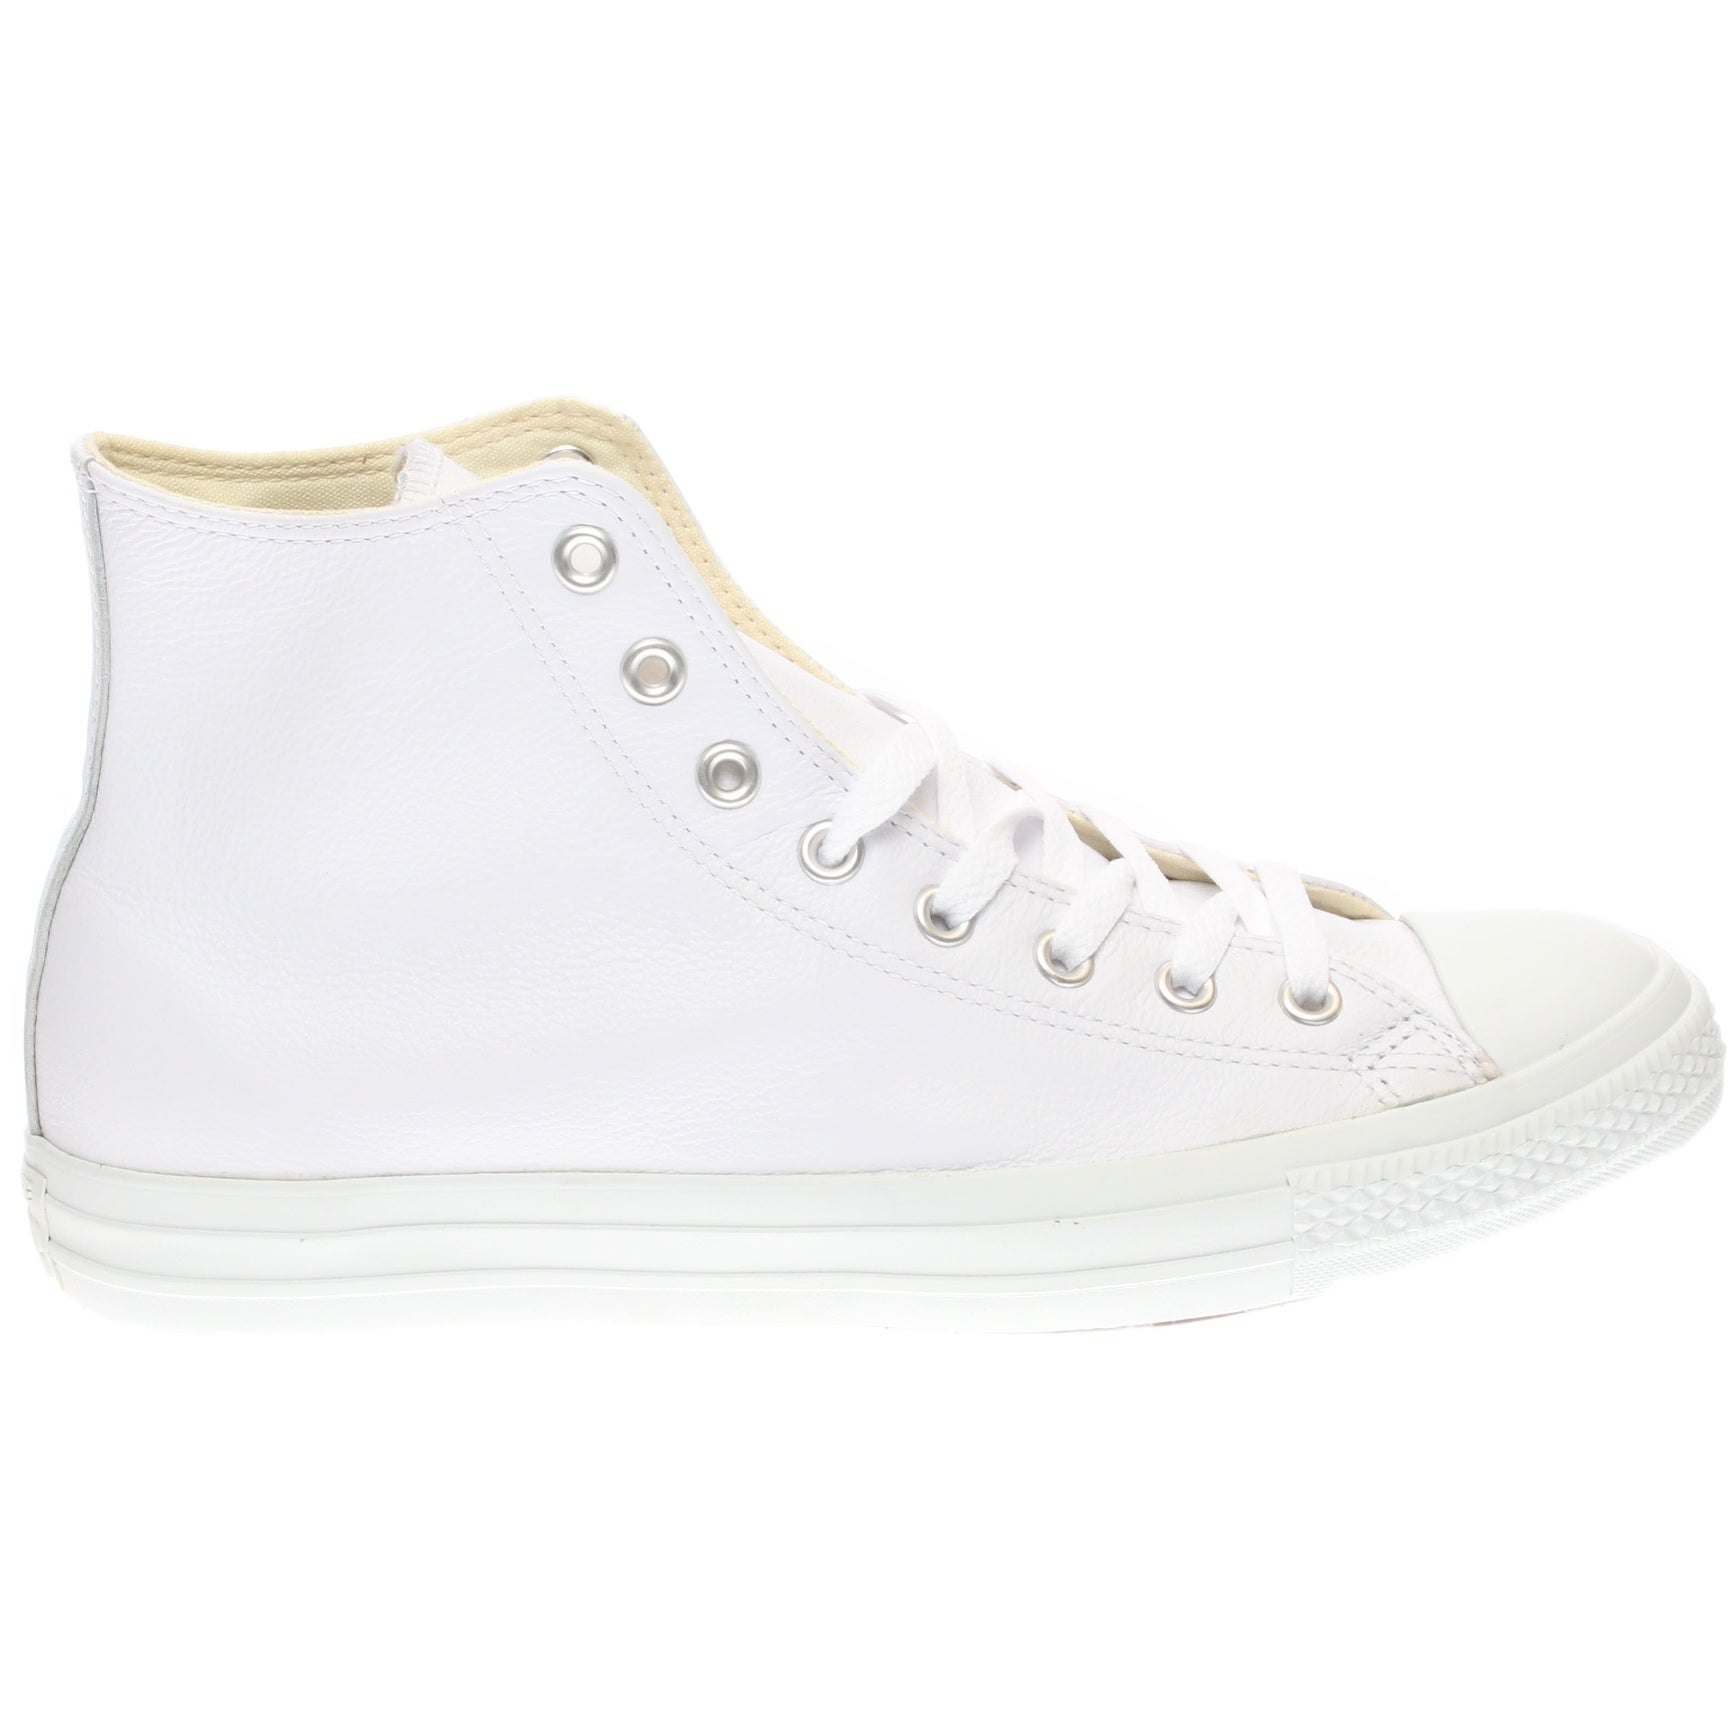 Shop Converse Mens All Star Specialty Hi Leather Lace Up